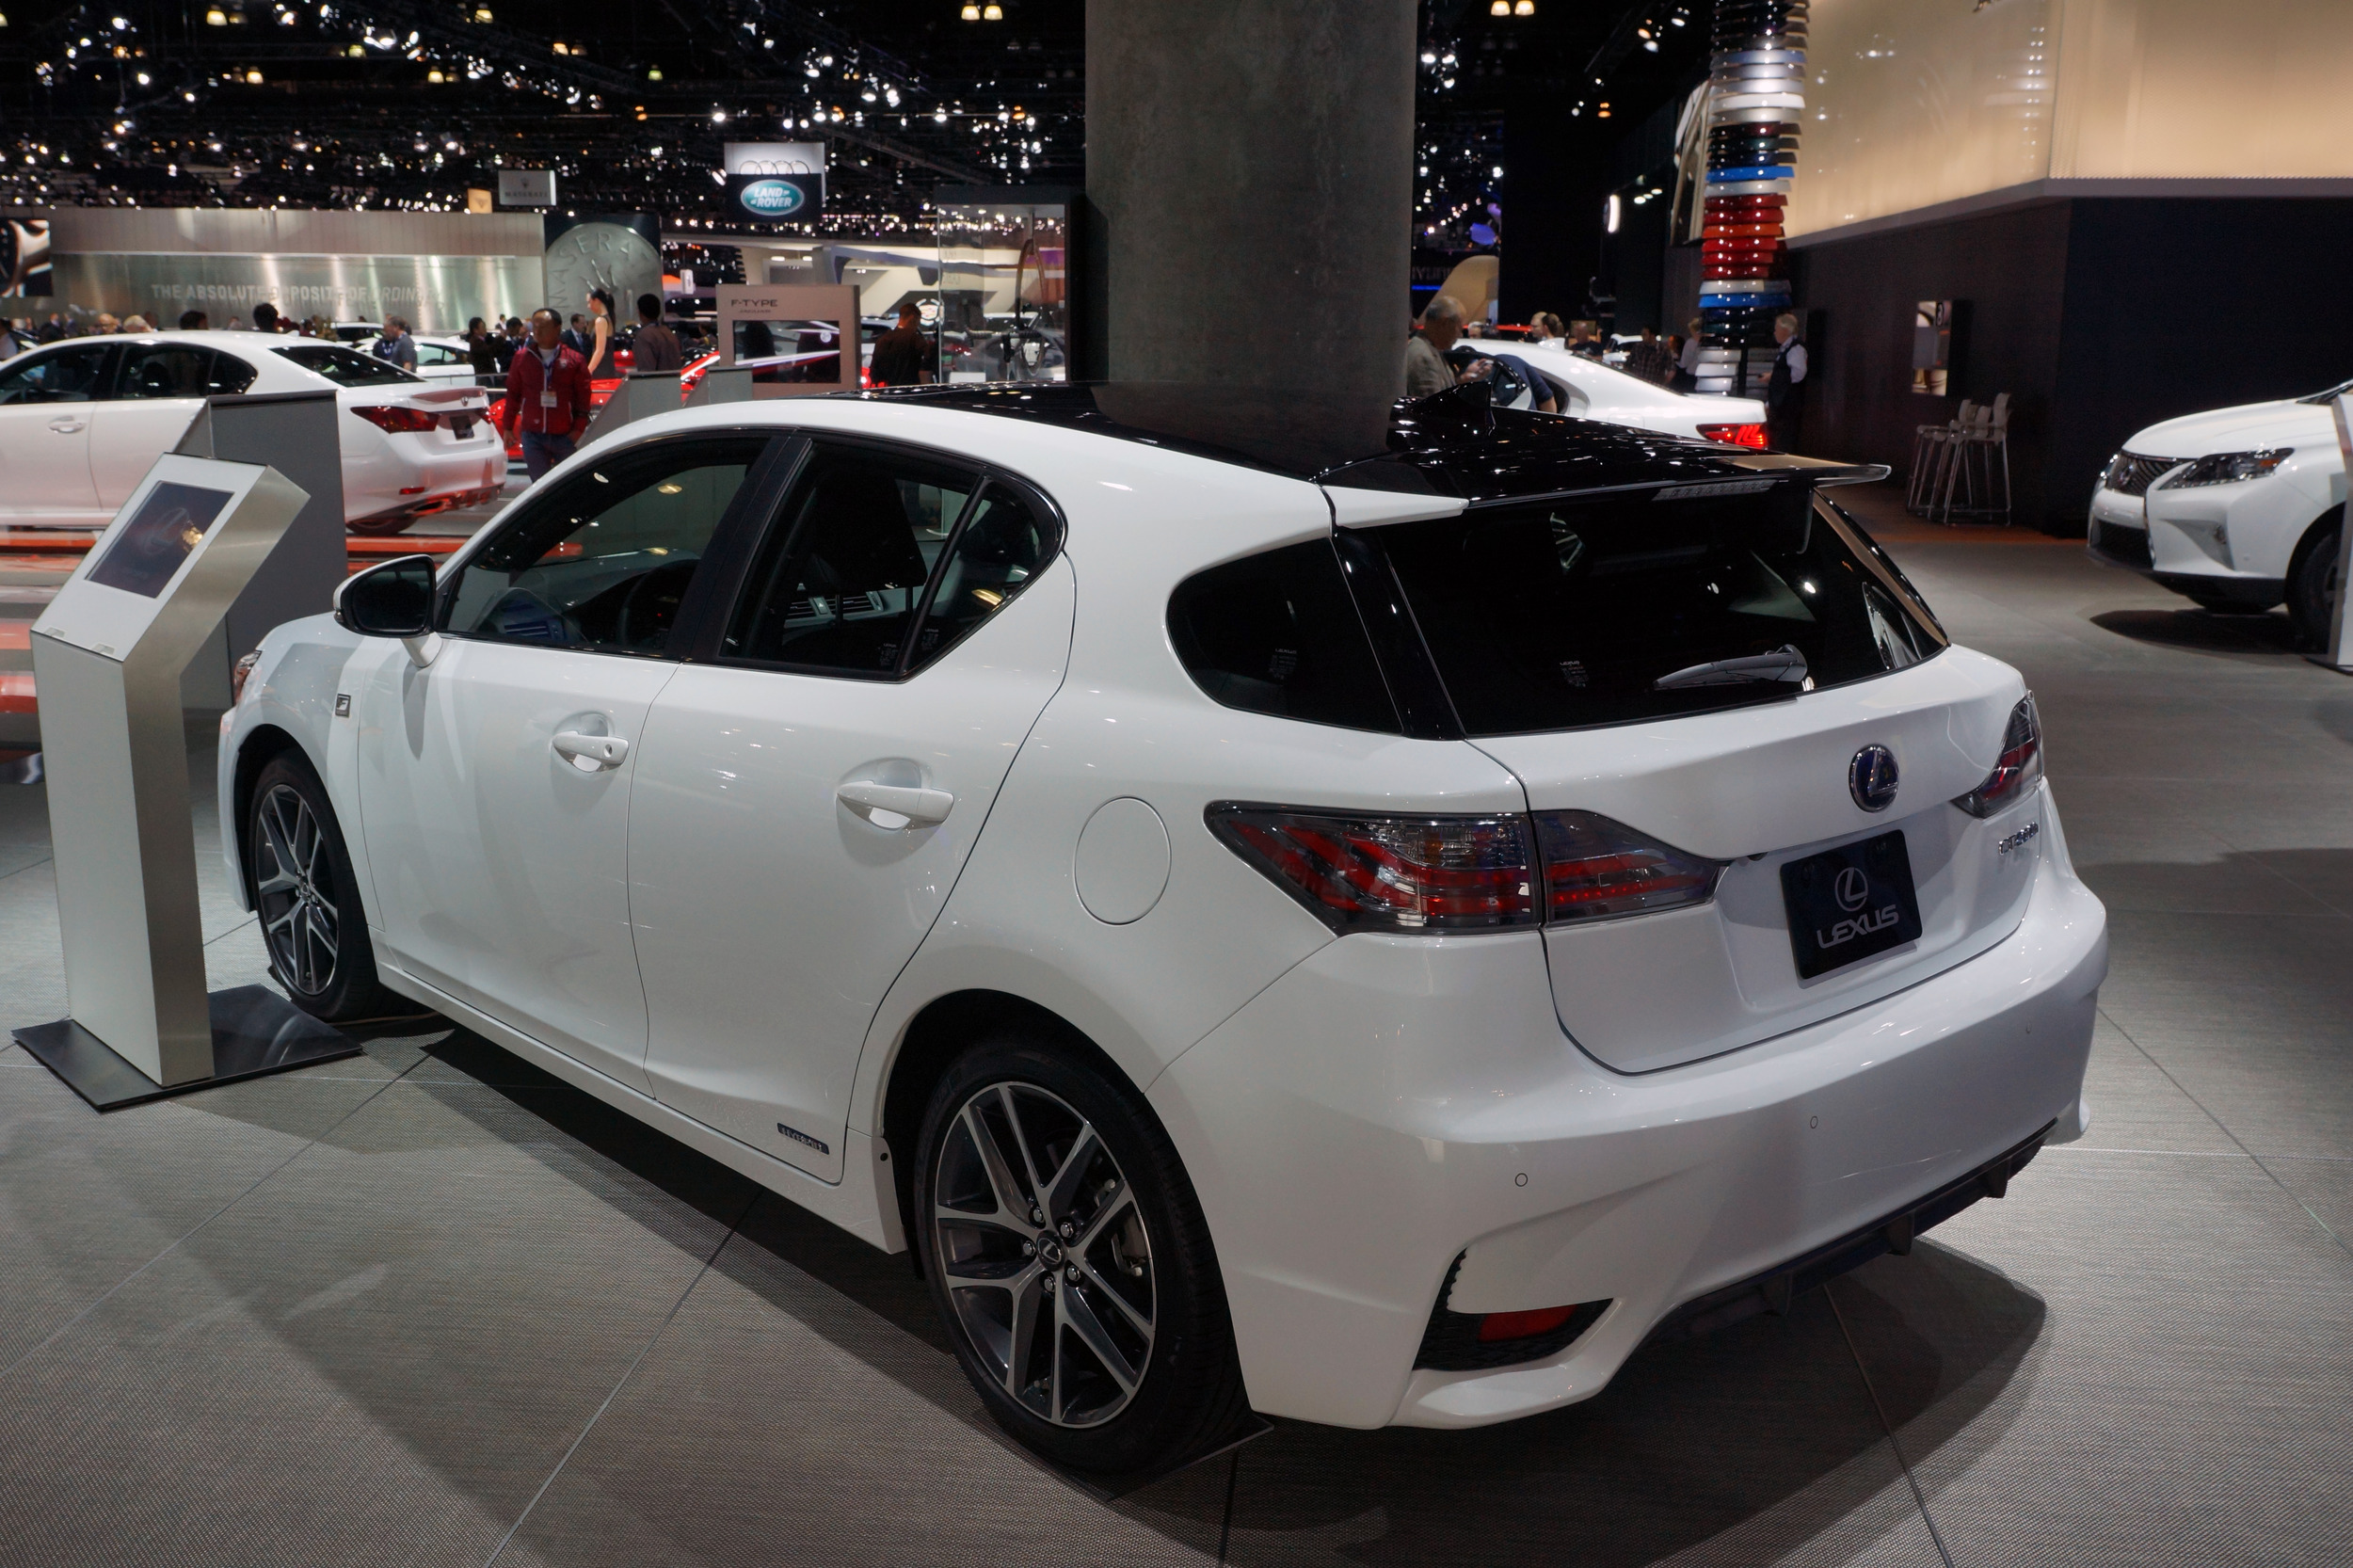 ct new f the toy lexus up fires sport a